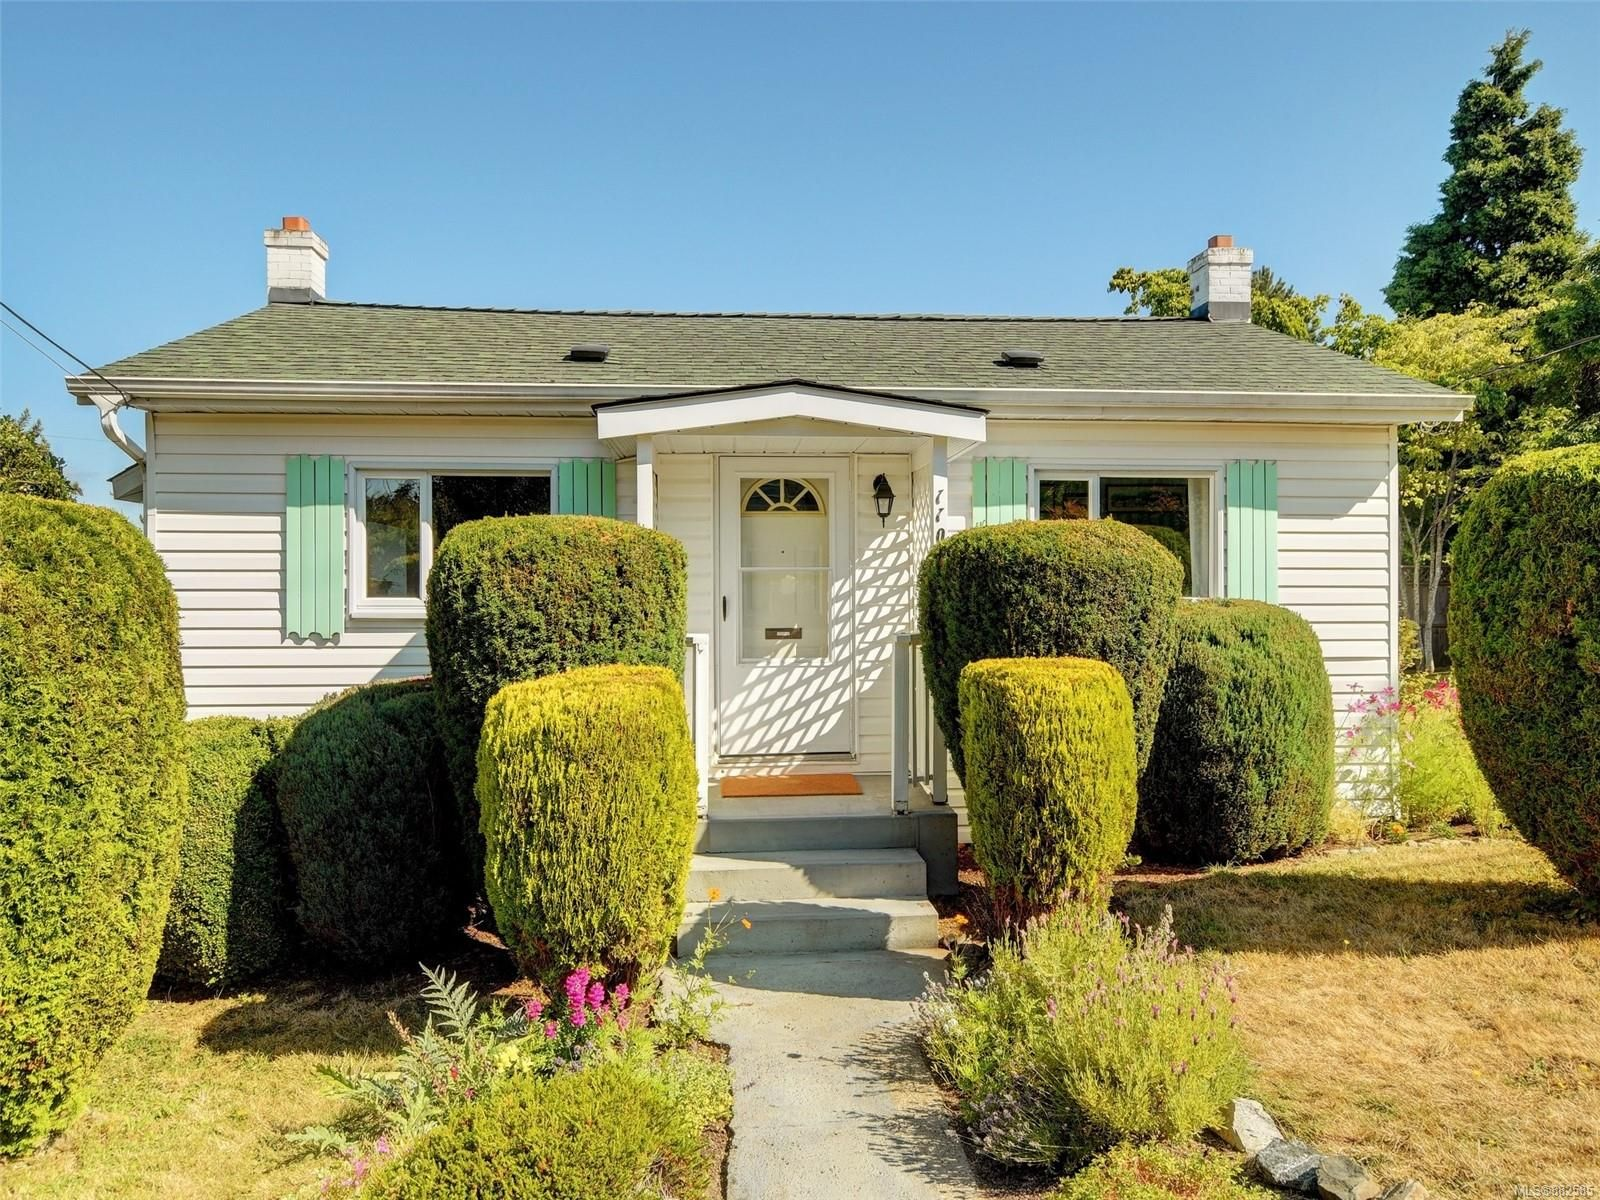 Main Photo: 1104 Glenora Pl in : SE Maplewood House for sale (Saanich East)  : MLS®# 882585